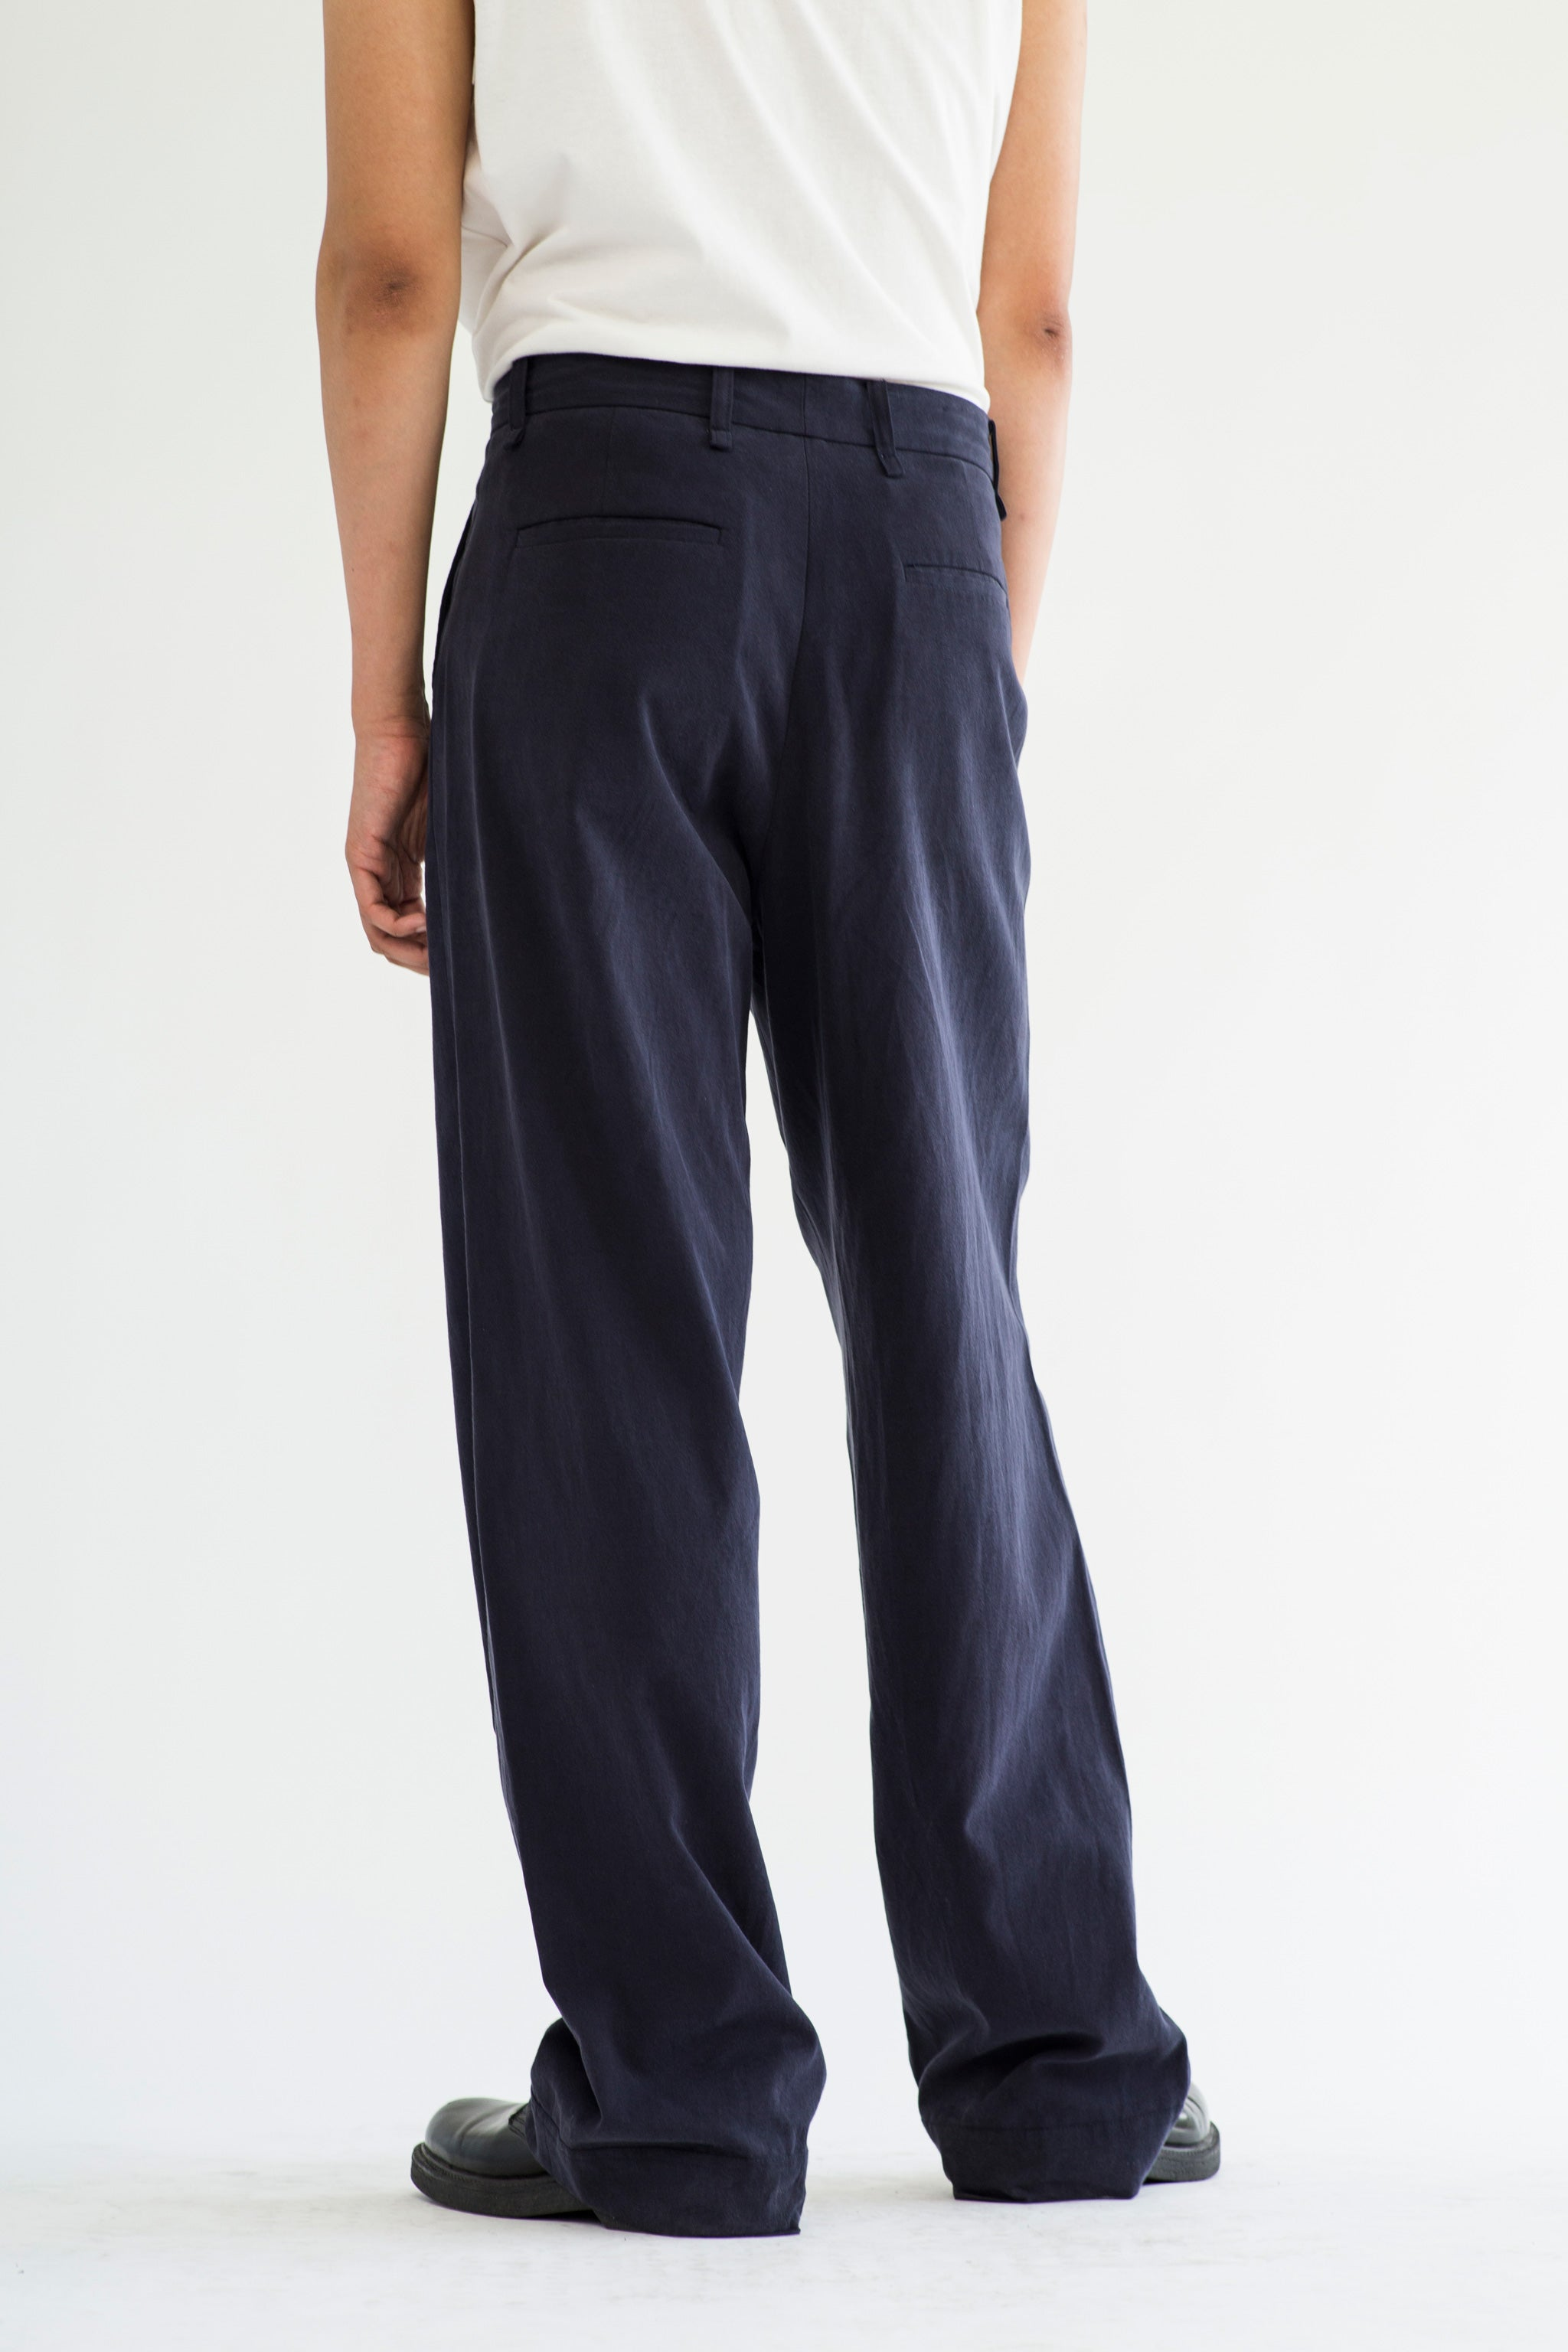 Goodfight Hobbes Trouser Navy